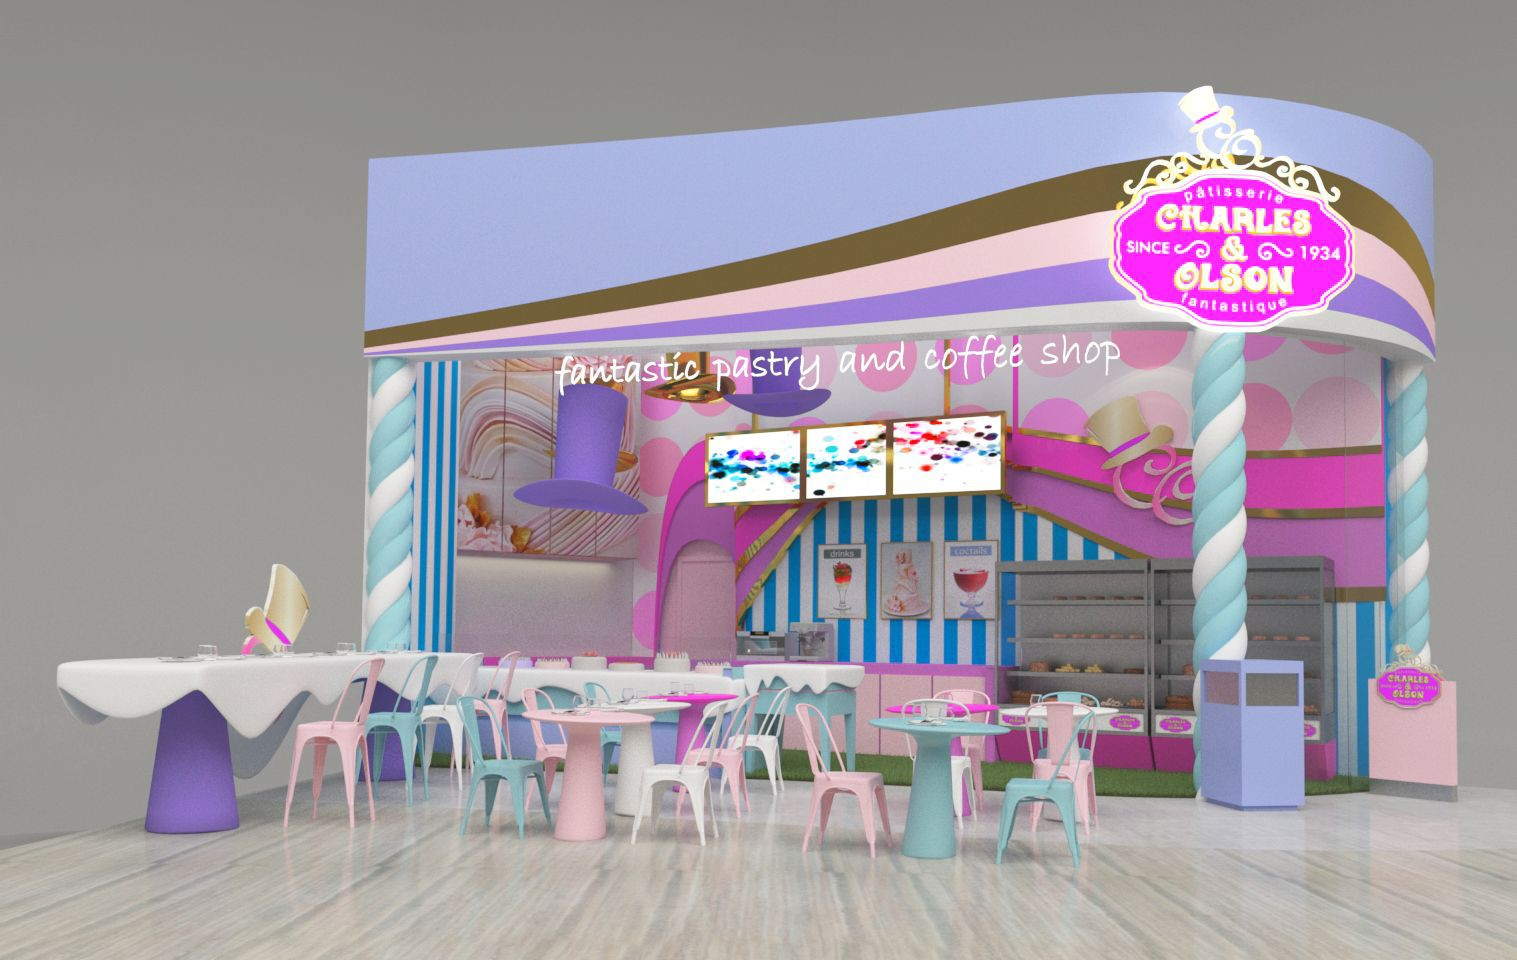 Guaranteed contest: Redesign our high quality french pastry shop!